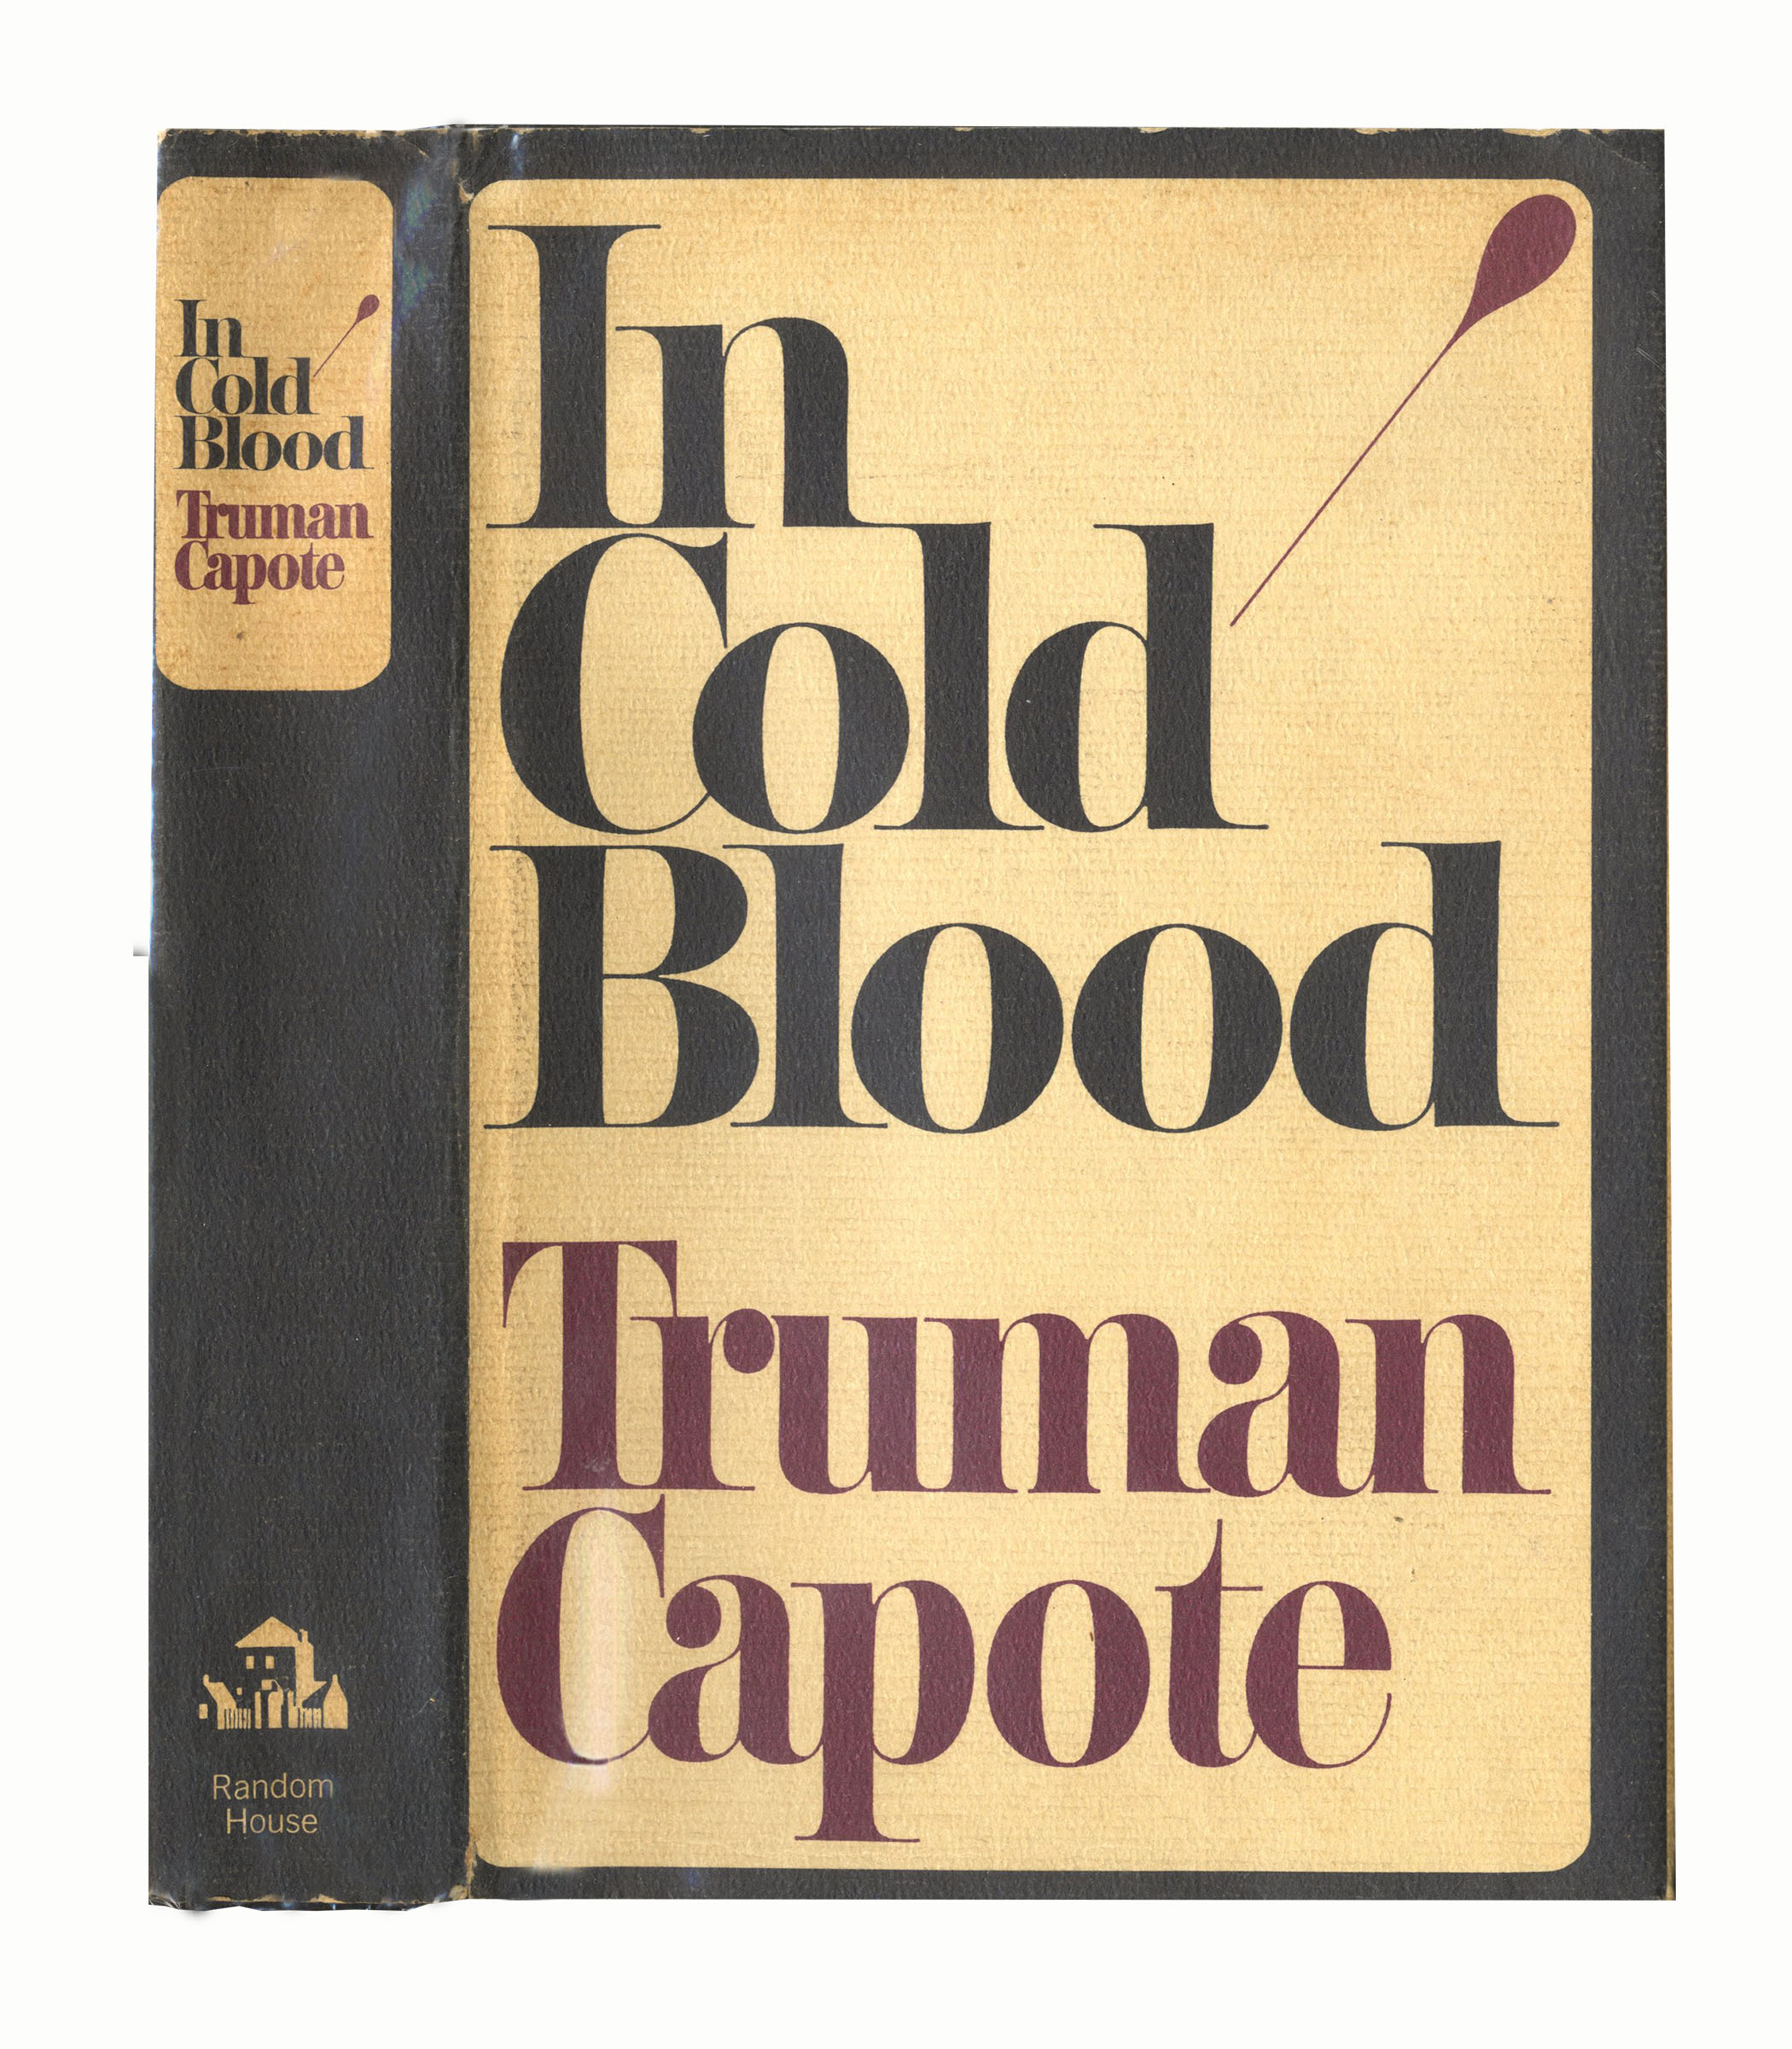 covered with dust truman capote In cold blood is a book by truman capote and is widely regarded as his most famous novel capote had read about the clutter murders and wanted to write an exciting nonfiction novel, so he set out on a five-year journey to write this book.